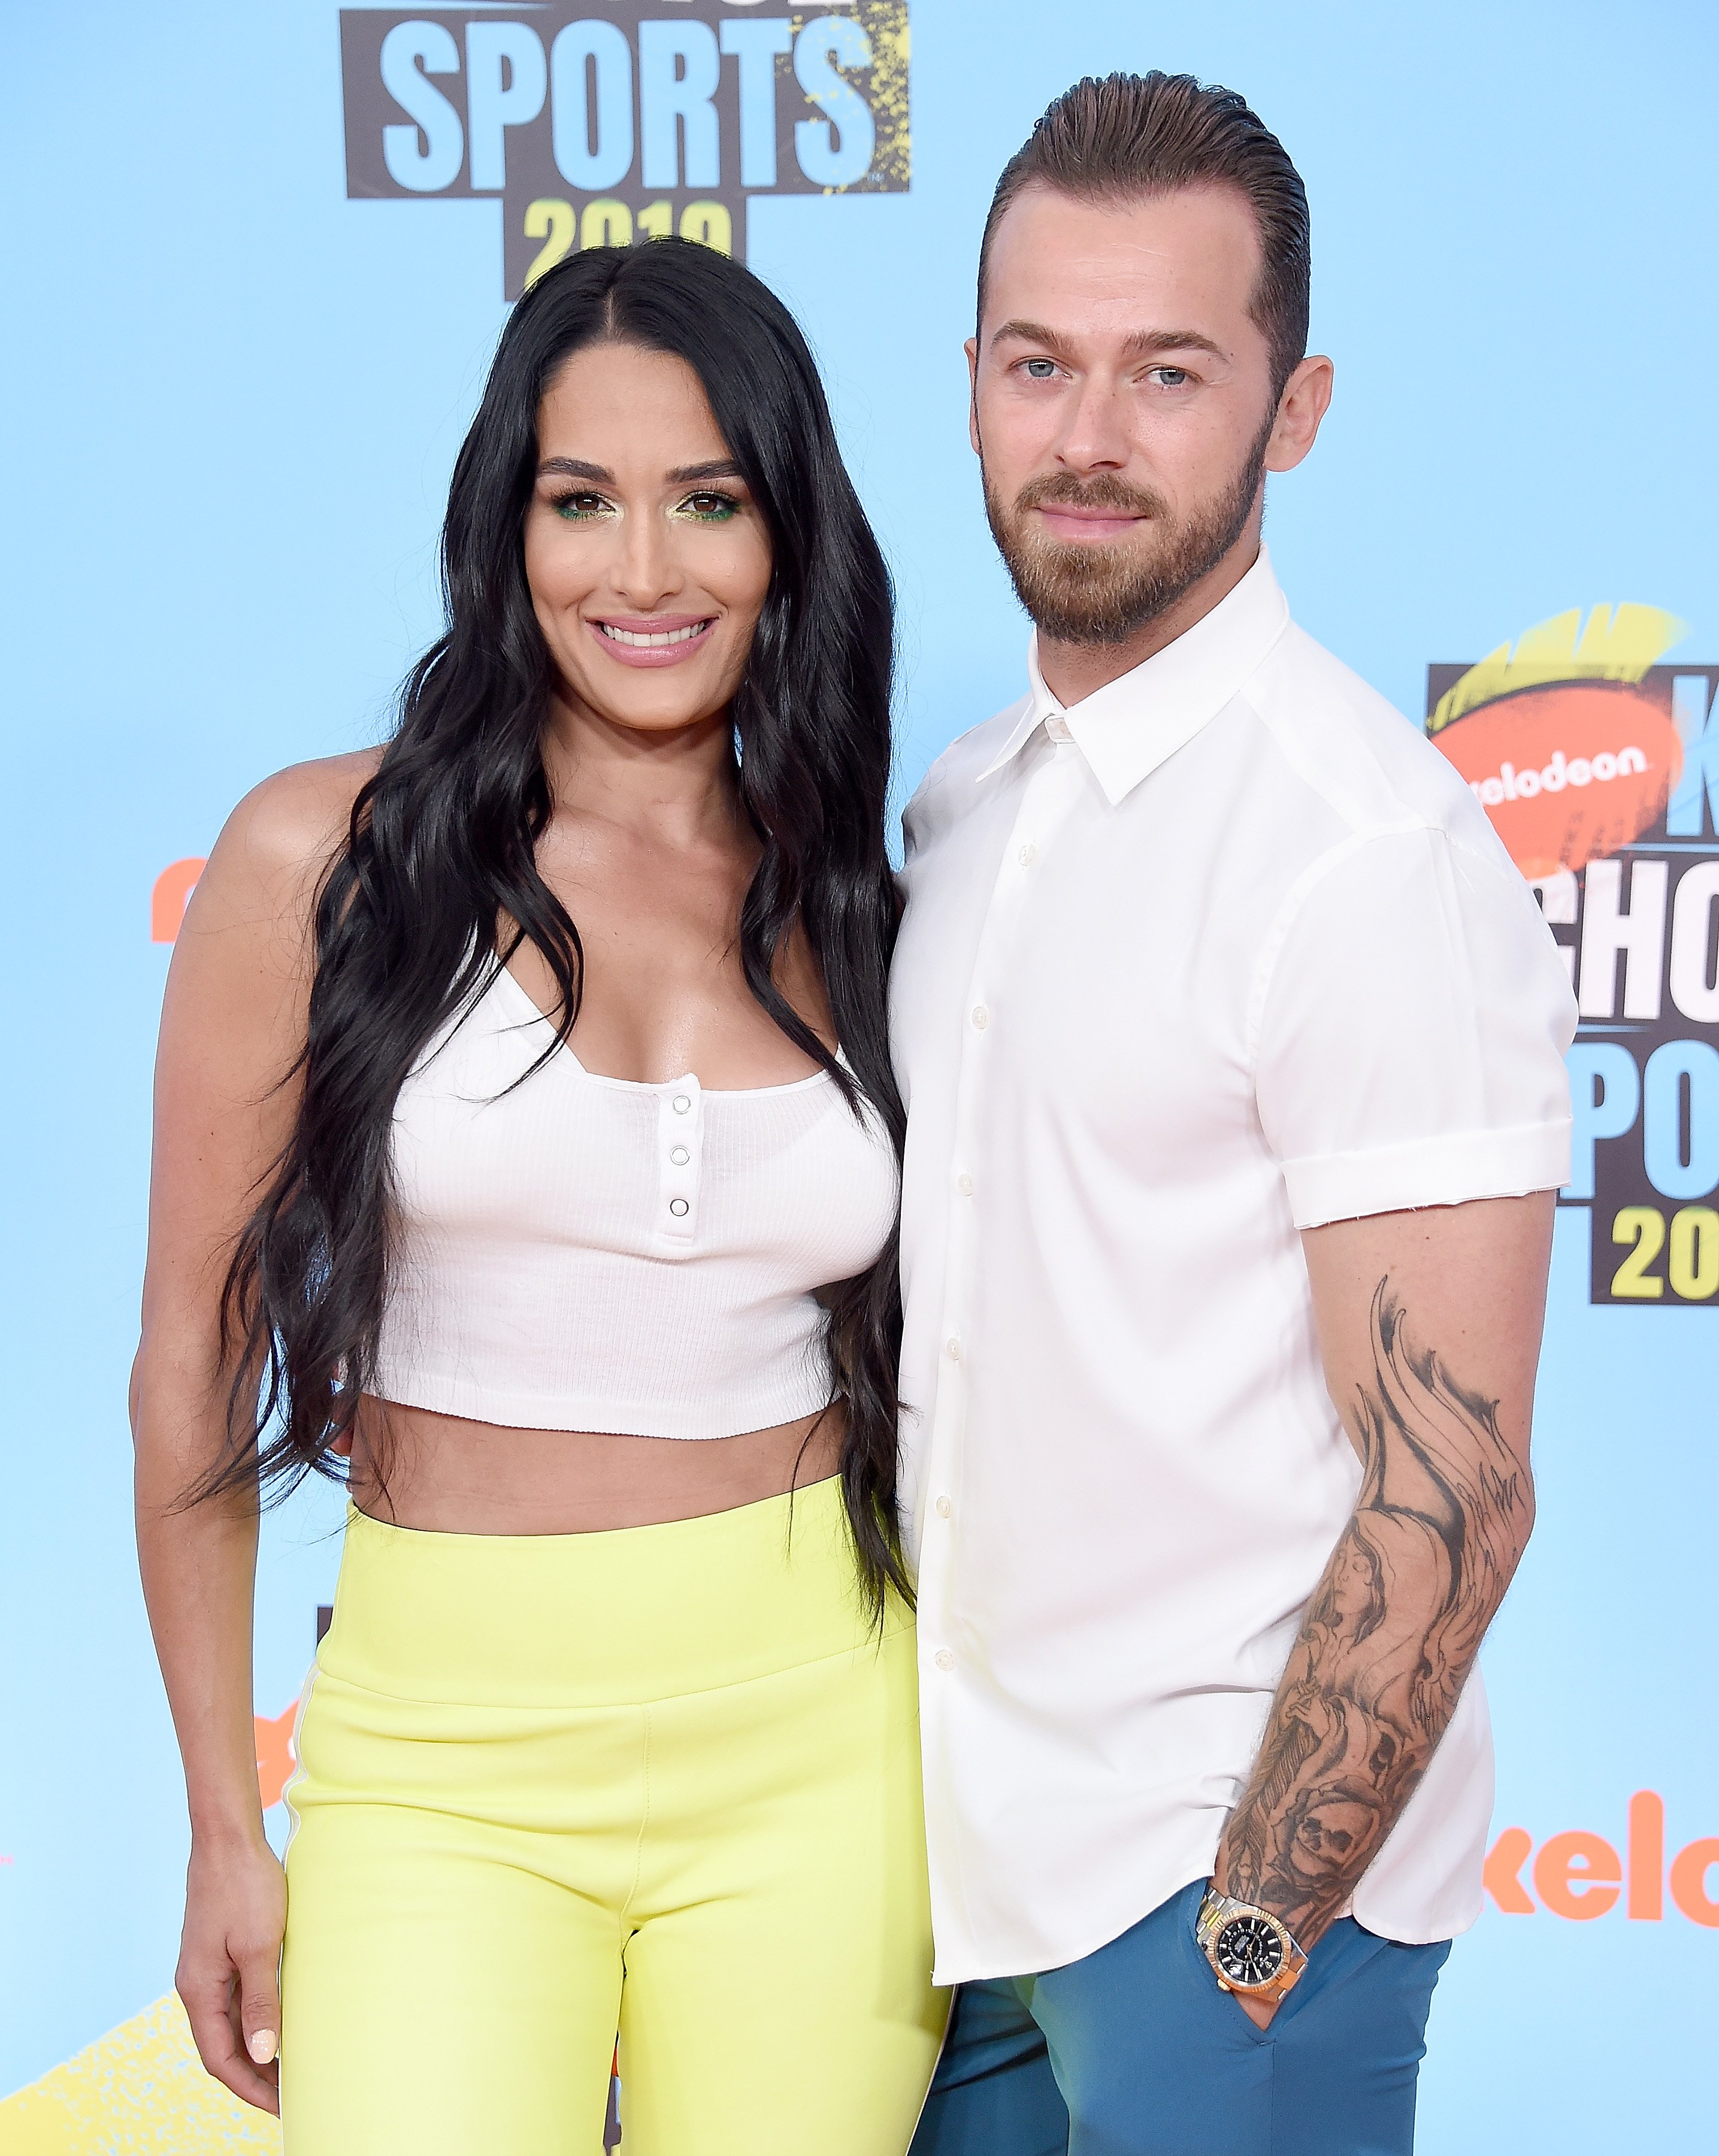 Nikki Bella and Artem Chigvintsev attends the Nickelodeon Kids' Choice Sports in Santa Monica, California on July 11, 2019 | Photo: Getty Images